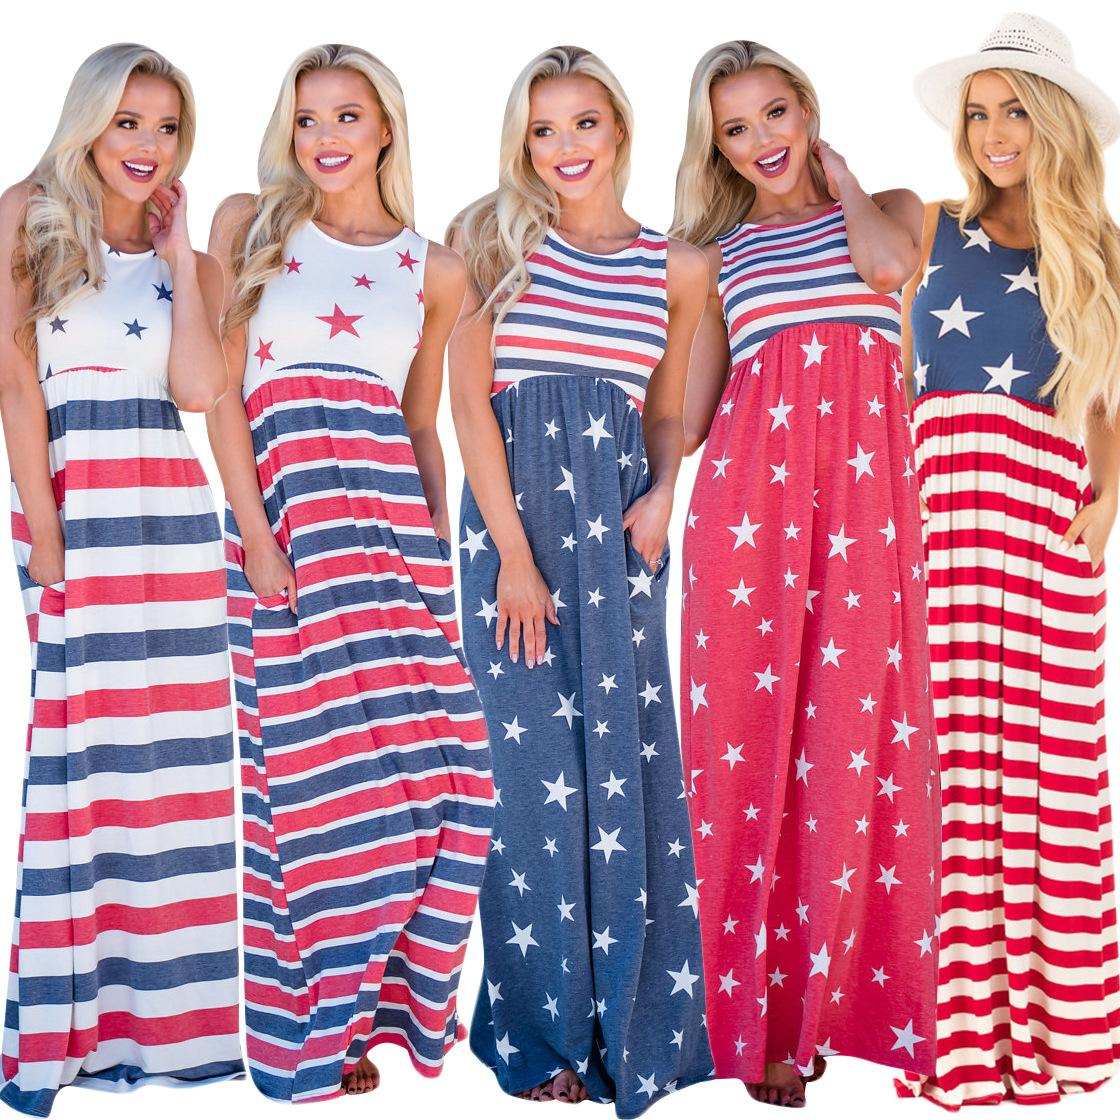 17739409b20 2019 Women Ladies Stars Stripe Maxi Dress Clubwear Party Independence Day  Sleeveless Maternity Print Dresses AAA451 From Kids dress